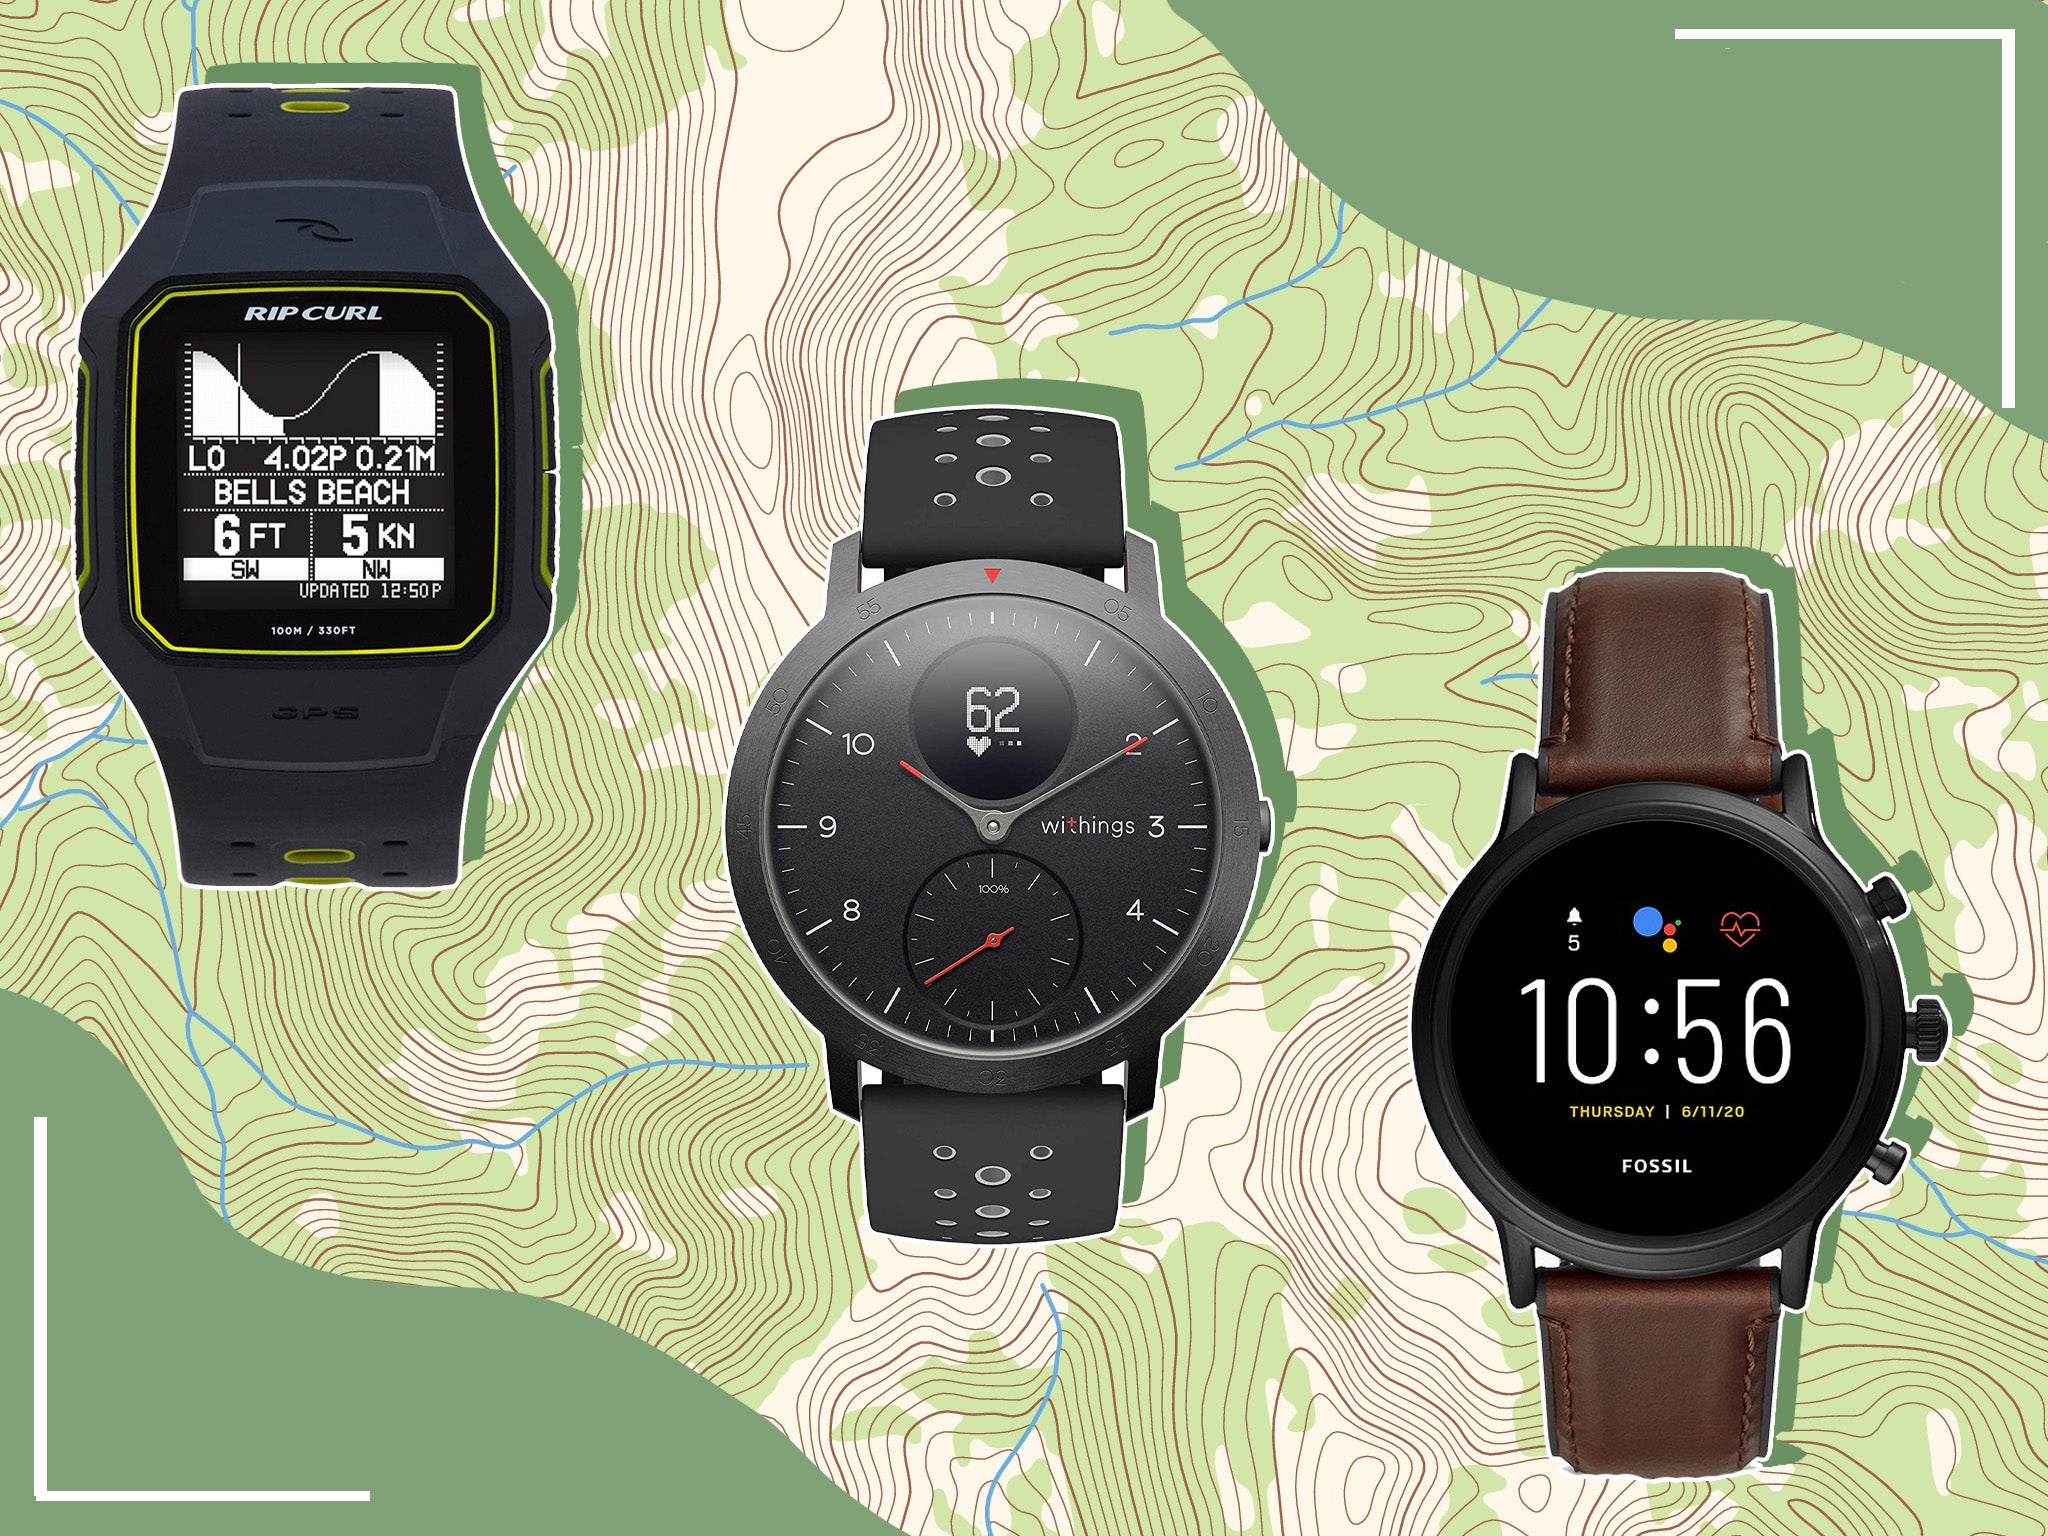 Best smart watch 2020 for outdoor adventures, from hiking to